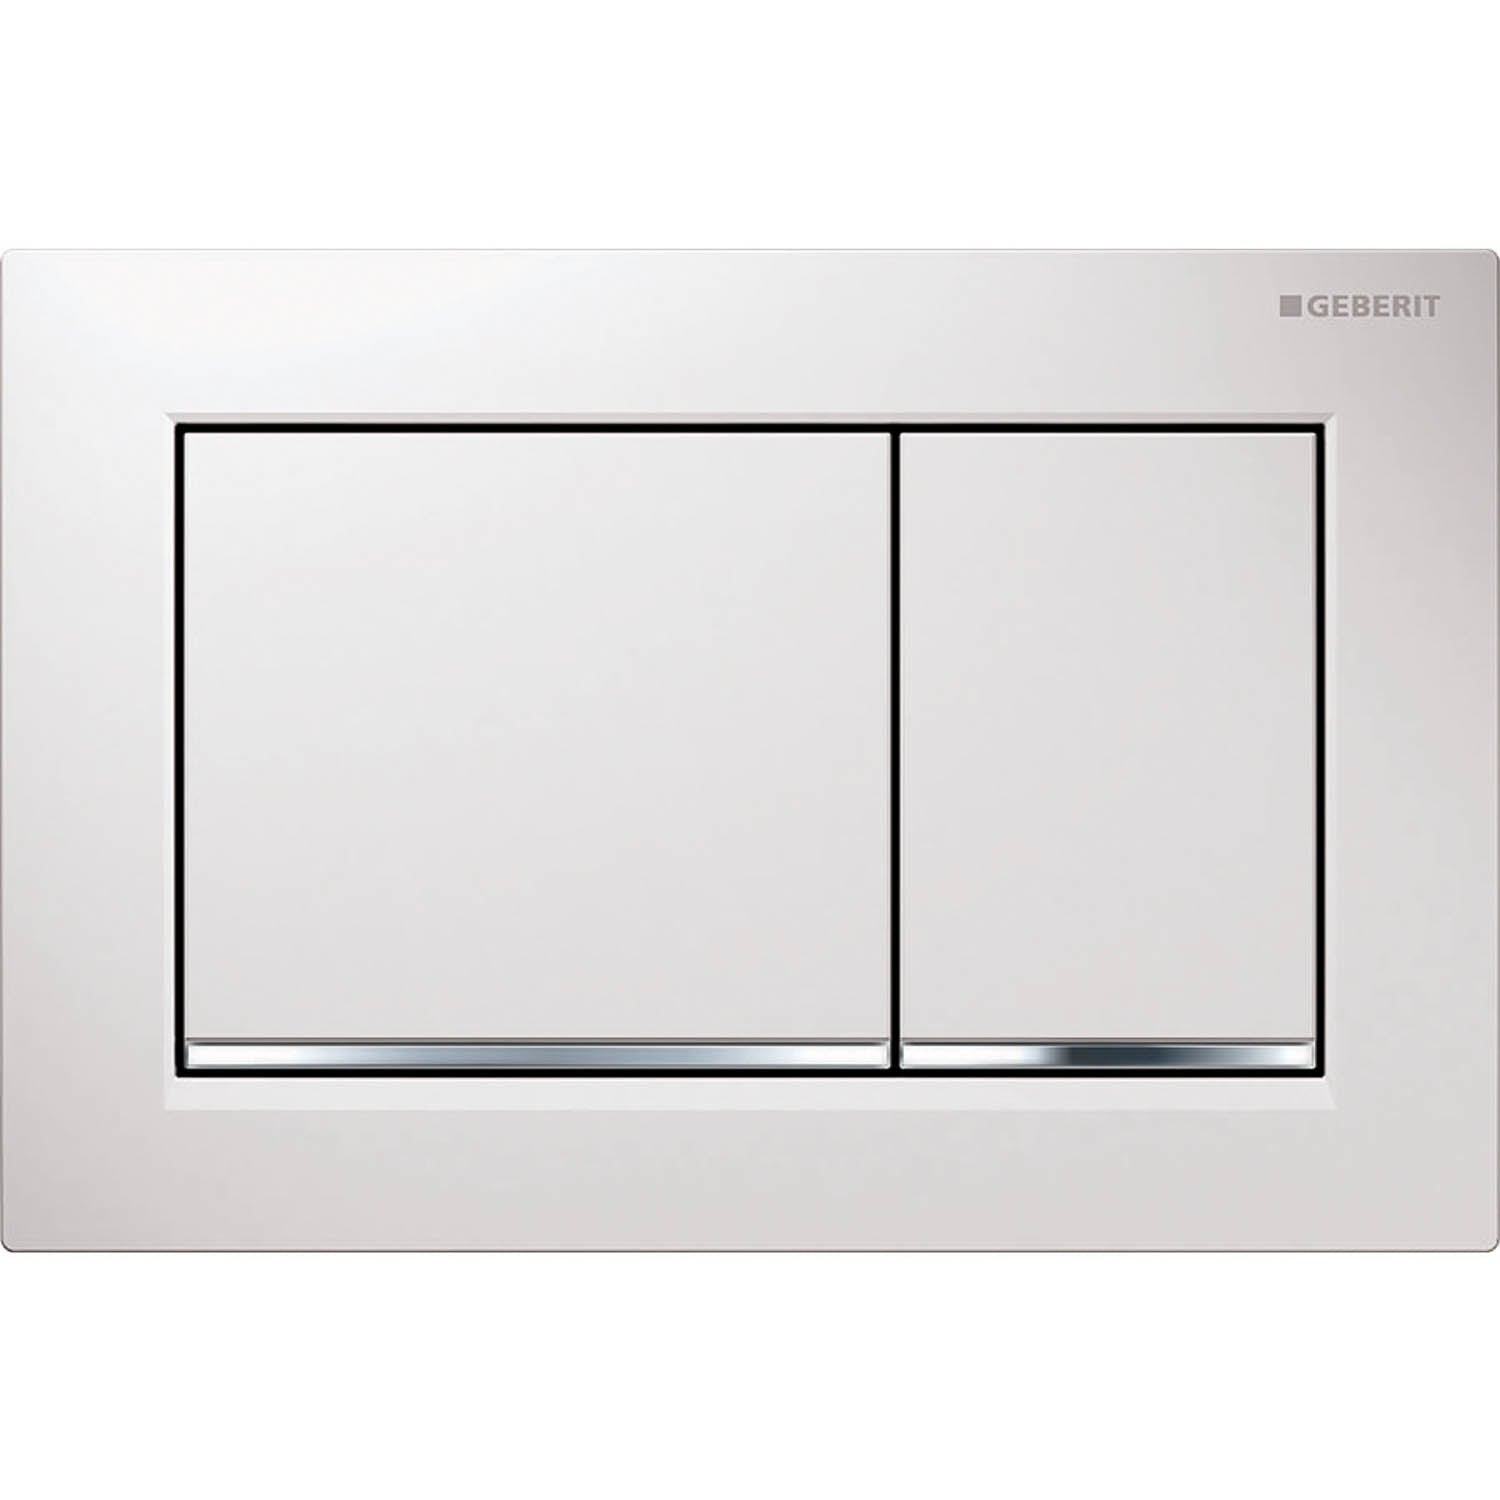 Omega Rectangular Dual Action Flush Plate with a white and gloss chrome finish on a white background